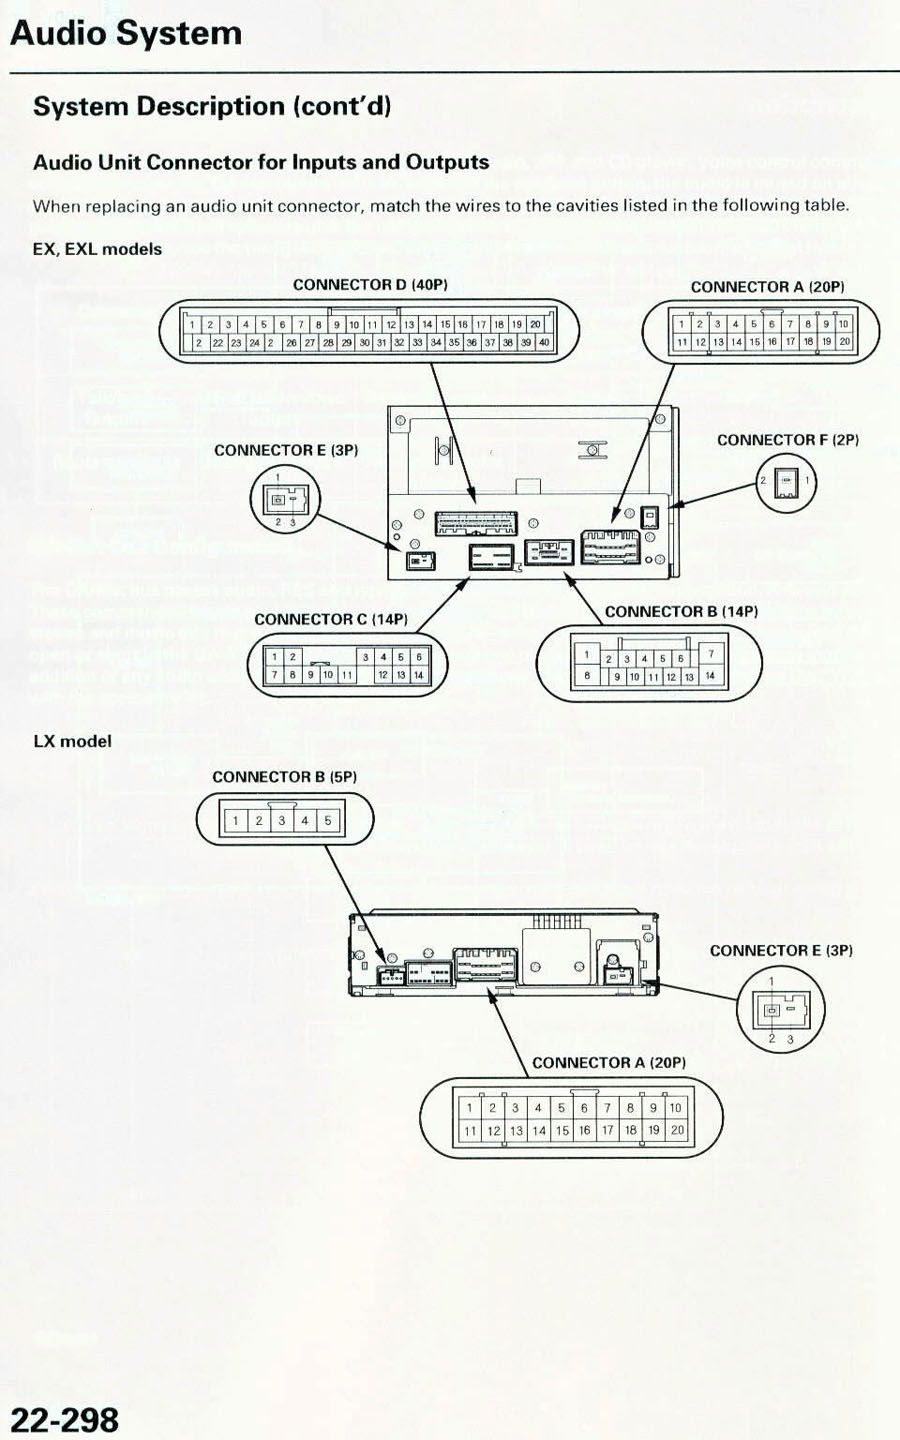 2004 chevy silverado stock radio wiring diagram 92 s10 07 civic harness